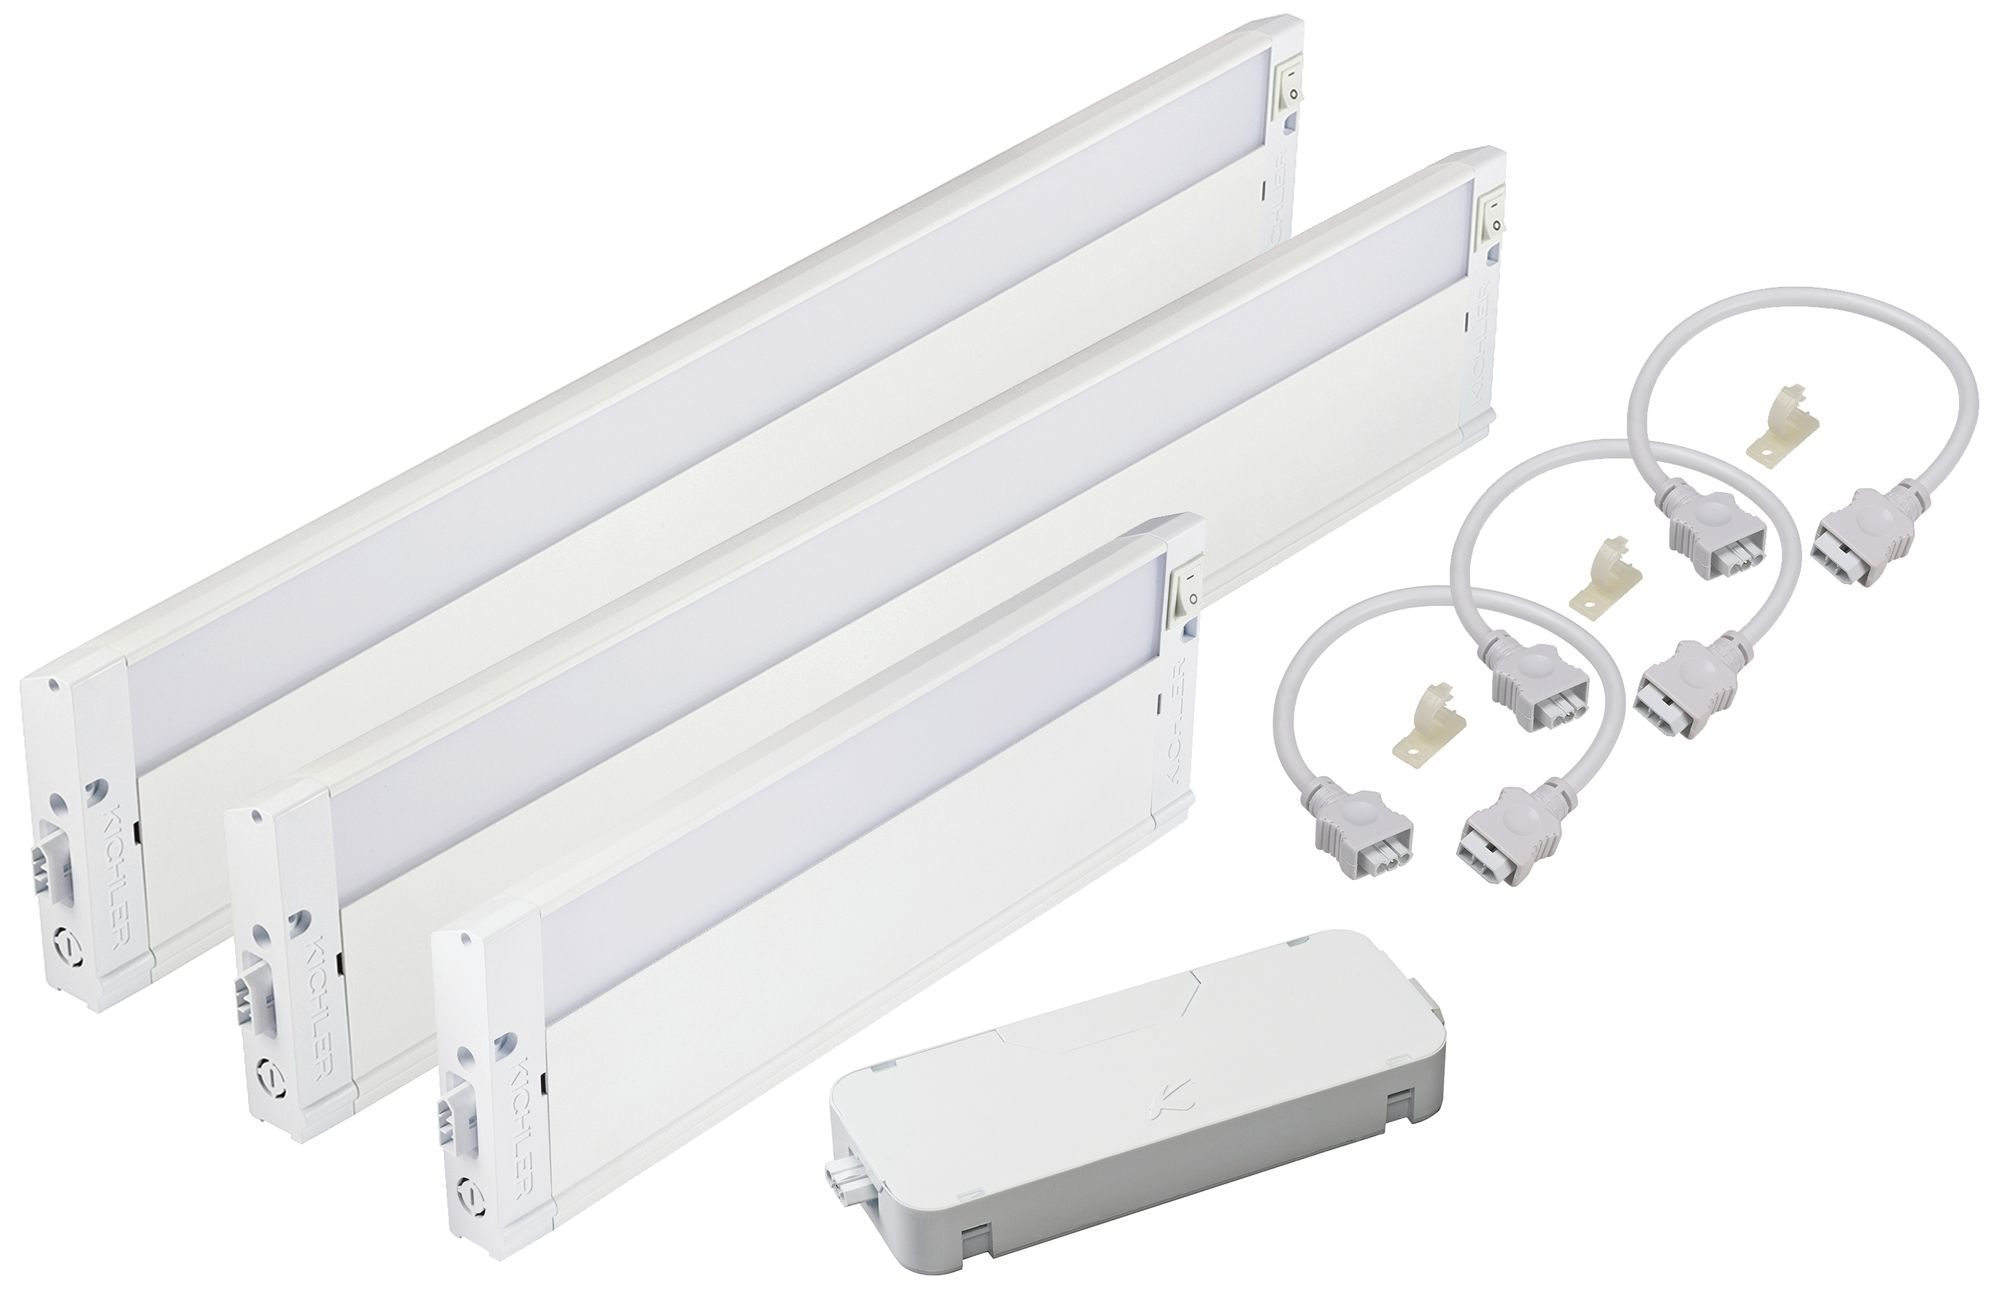 Attrayant Kichler Under Cabinet Kit With Three LED Lights And Cable